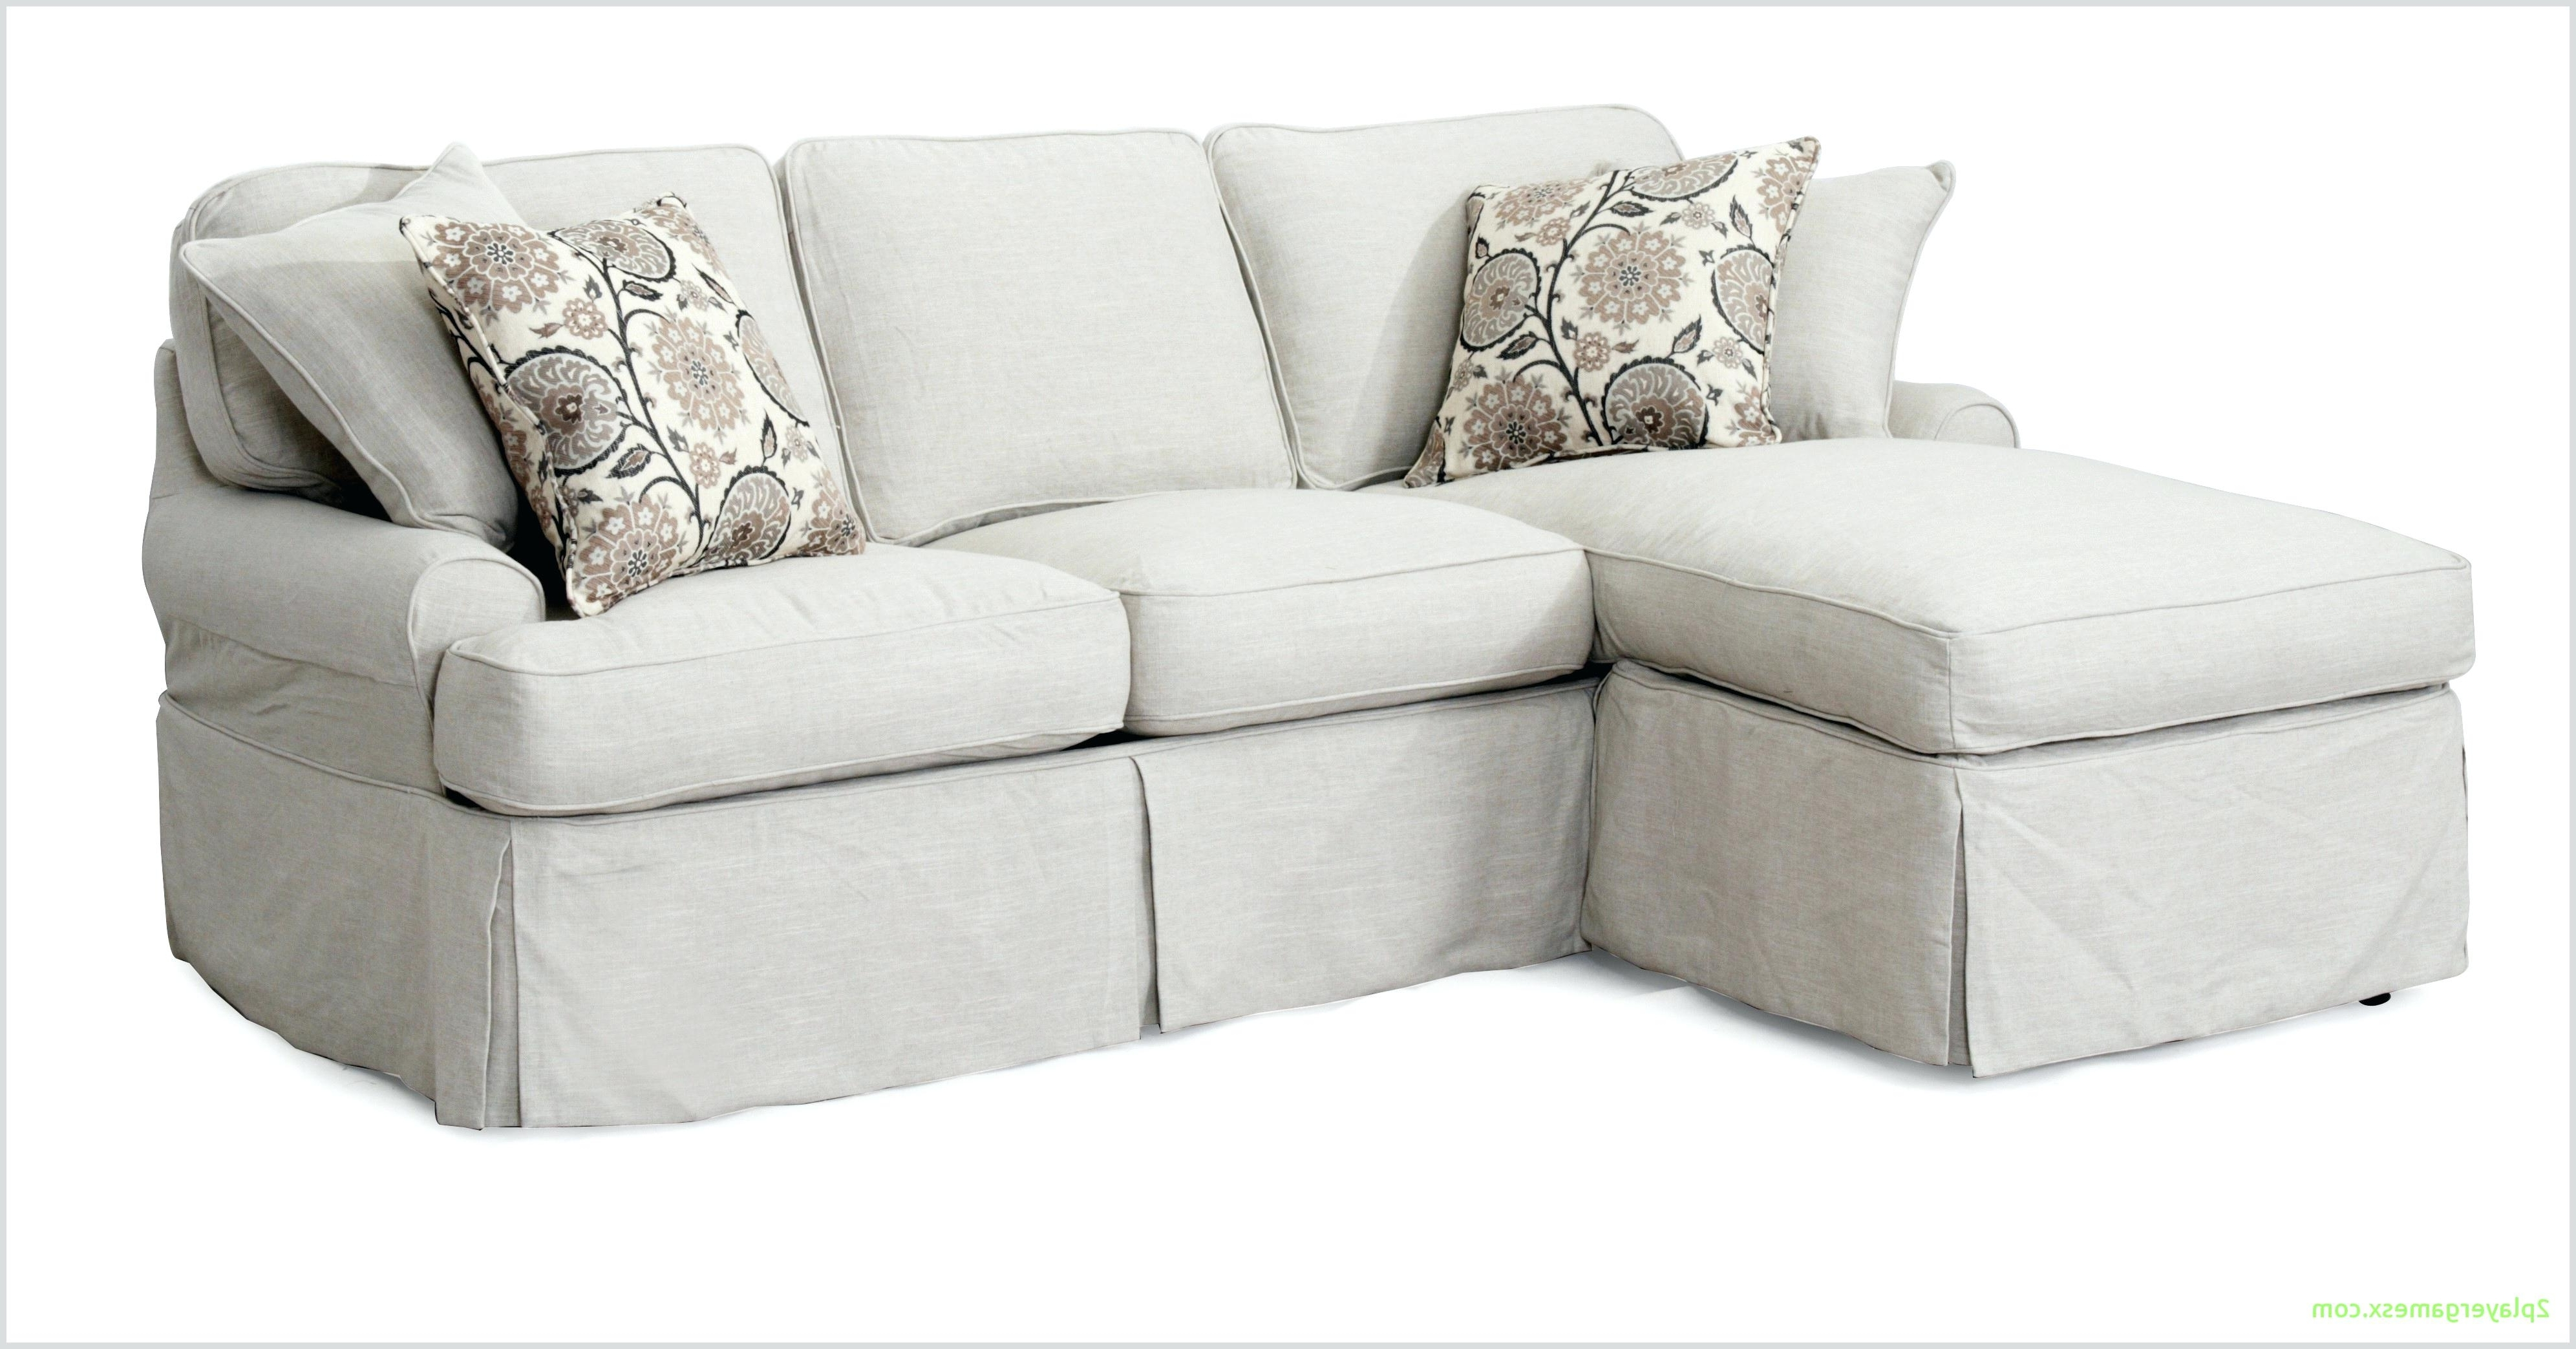 Most Recently Released Chaise Slipcovers In Slipcover For Sectional Slipcovers Couches With Recliners (View 11 of 15)